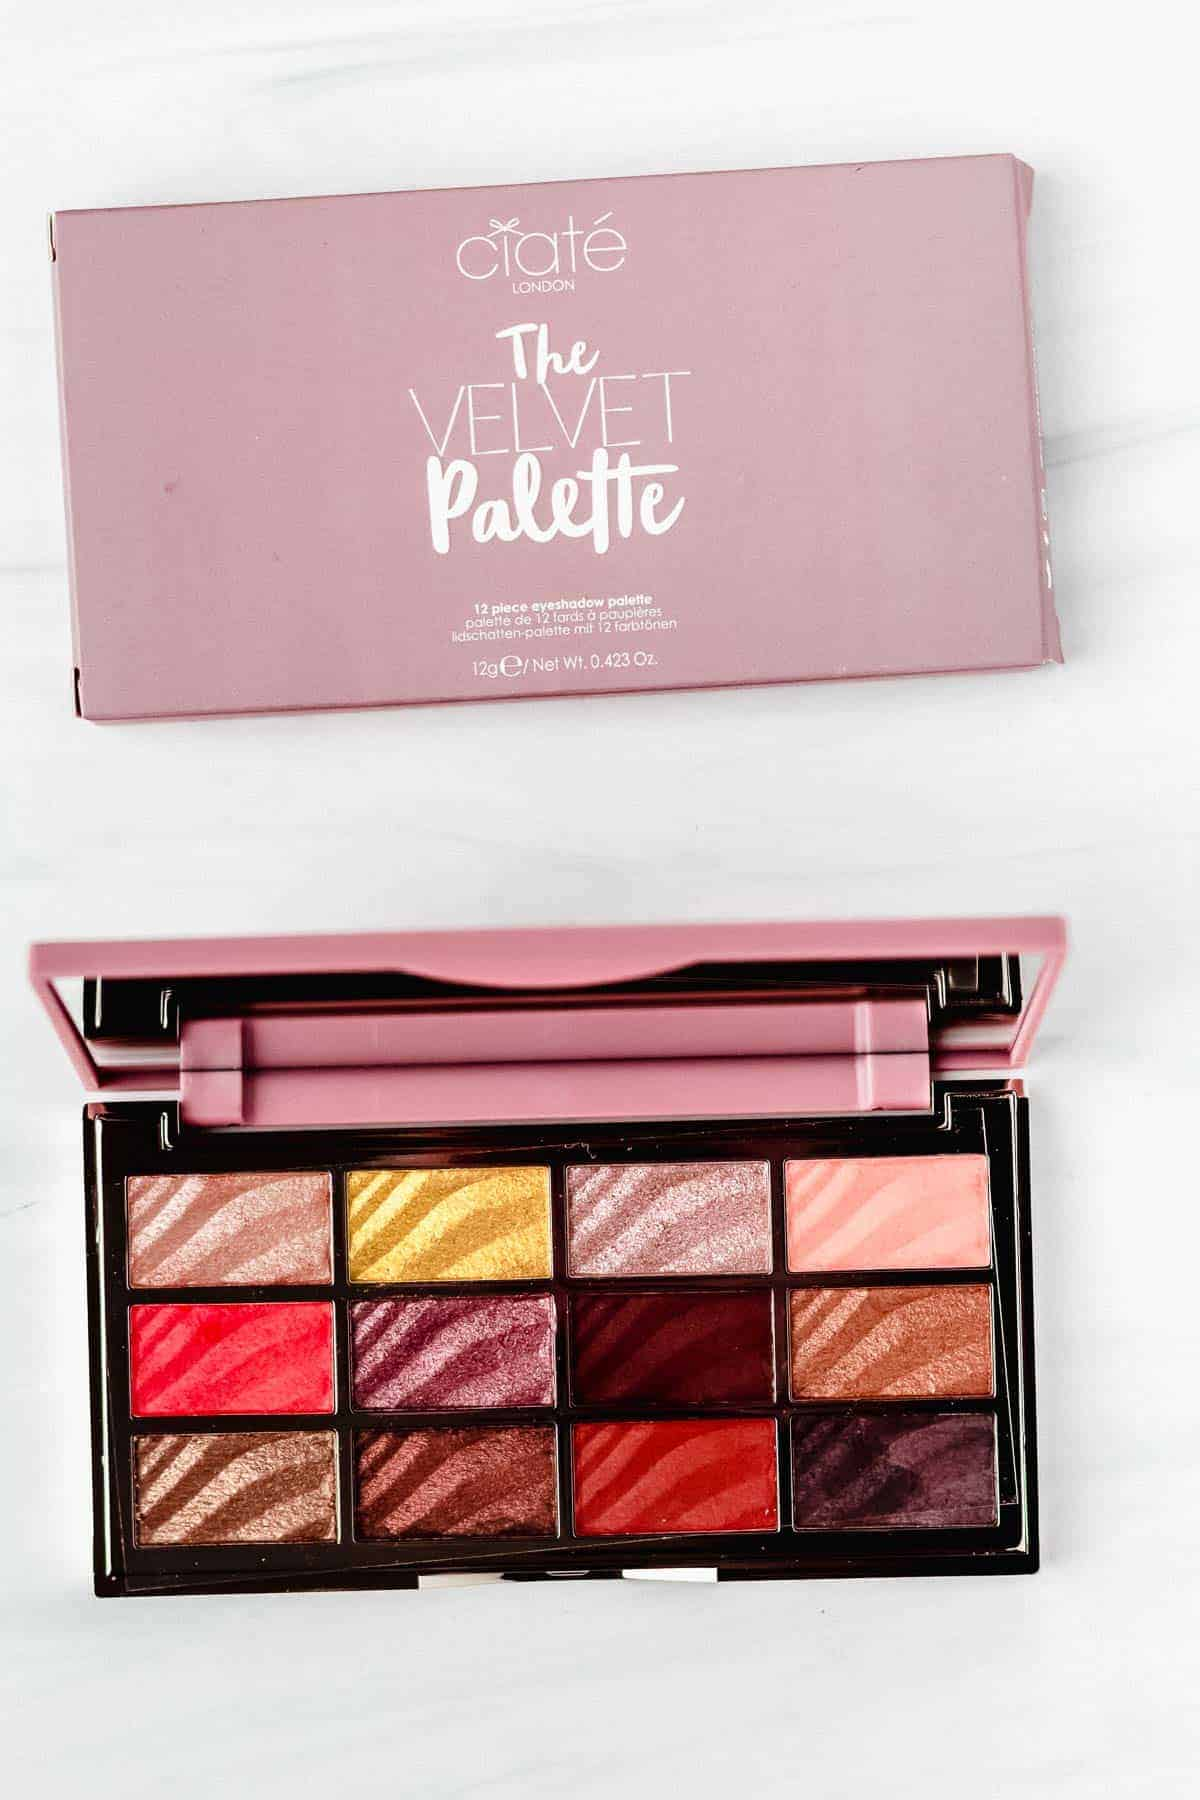 Ciaté London Velvet Eyeshadow Palette opened with the box behind it on a white backdrop